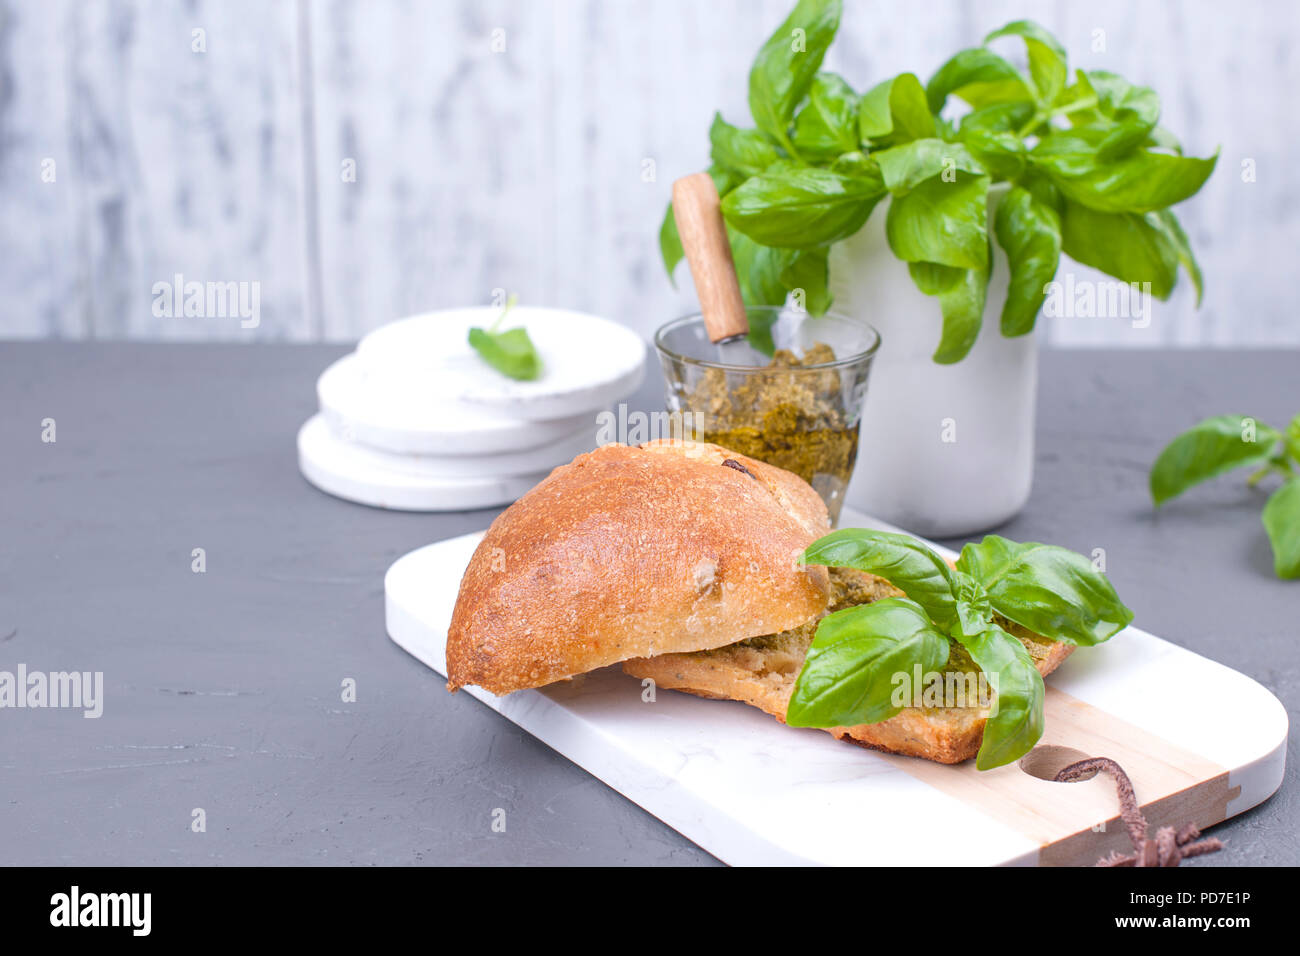 Fresh bread with pesto sauce and green basil on white board. Delicious healthy lunch. Free space for the text. Copy space - Stock Image